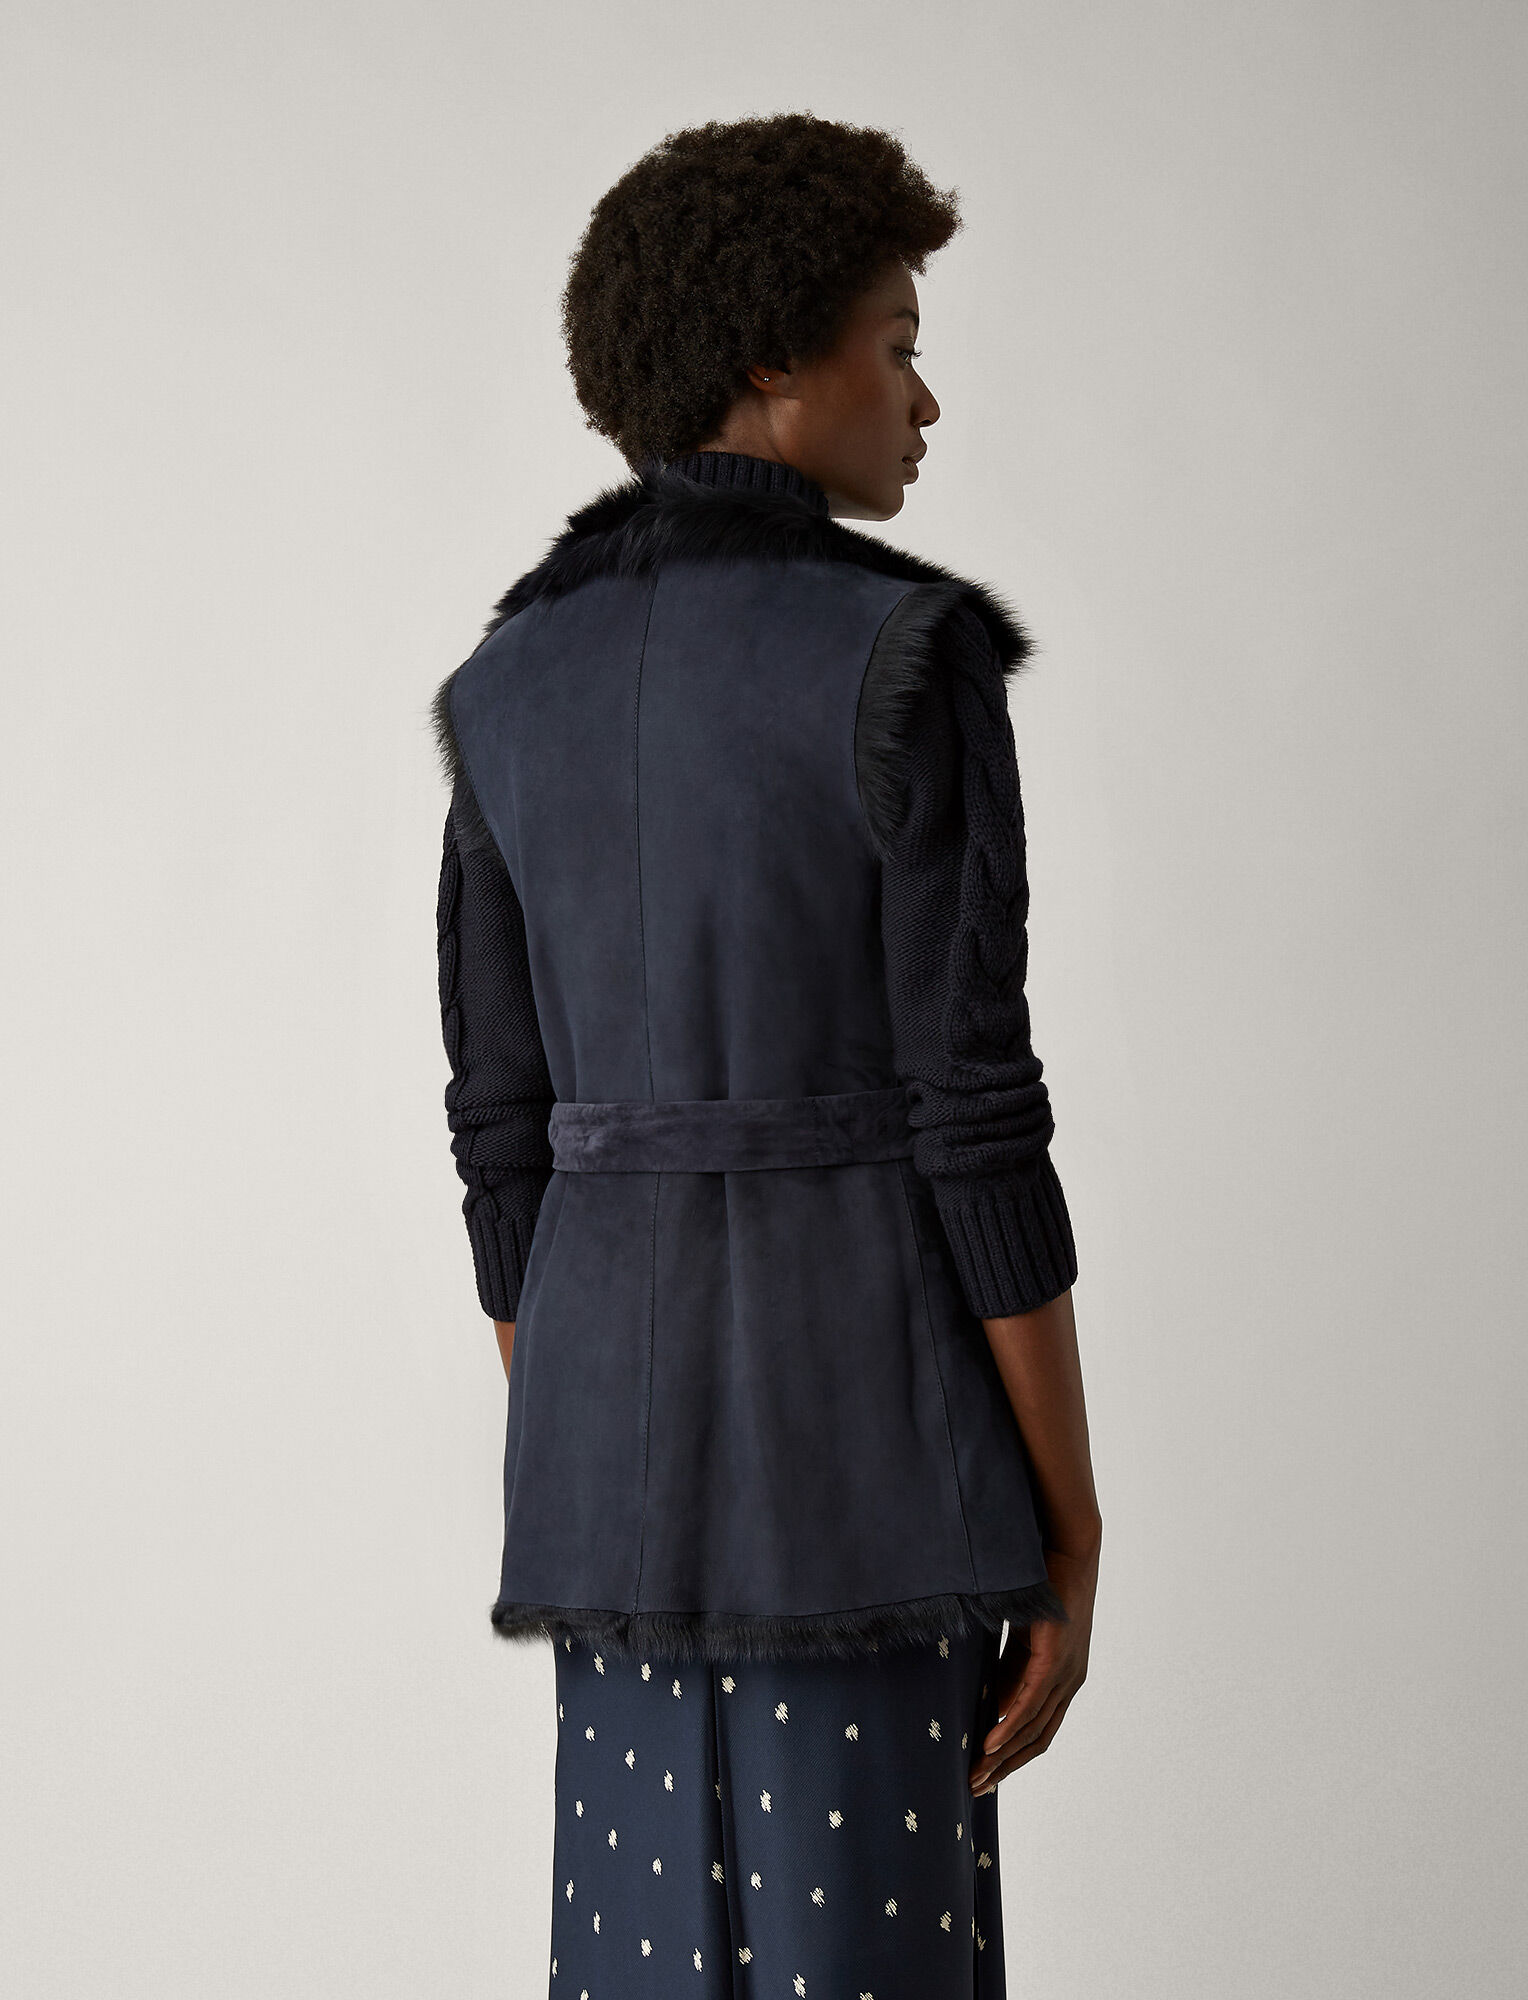 Joseph, Long Hair Toscana Lima Gilet, in NAVY